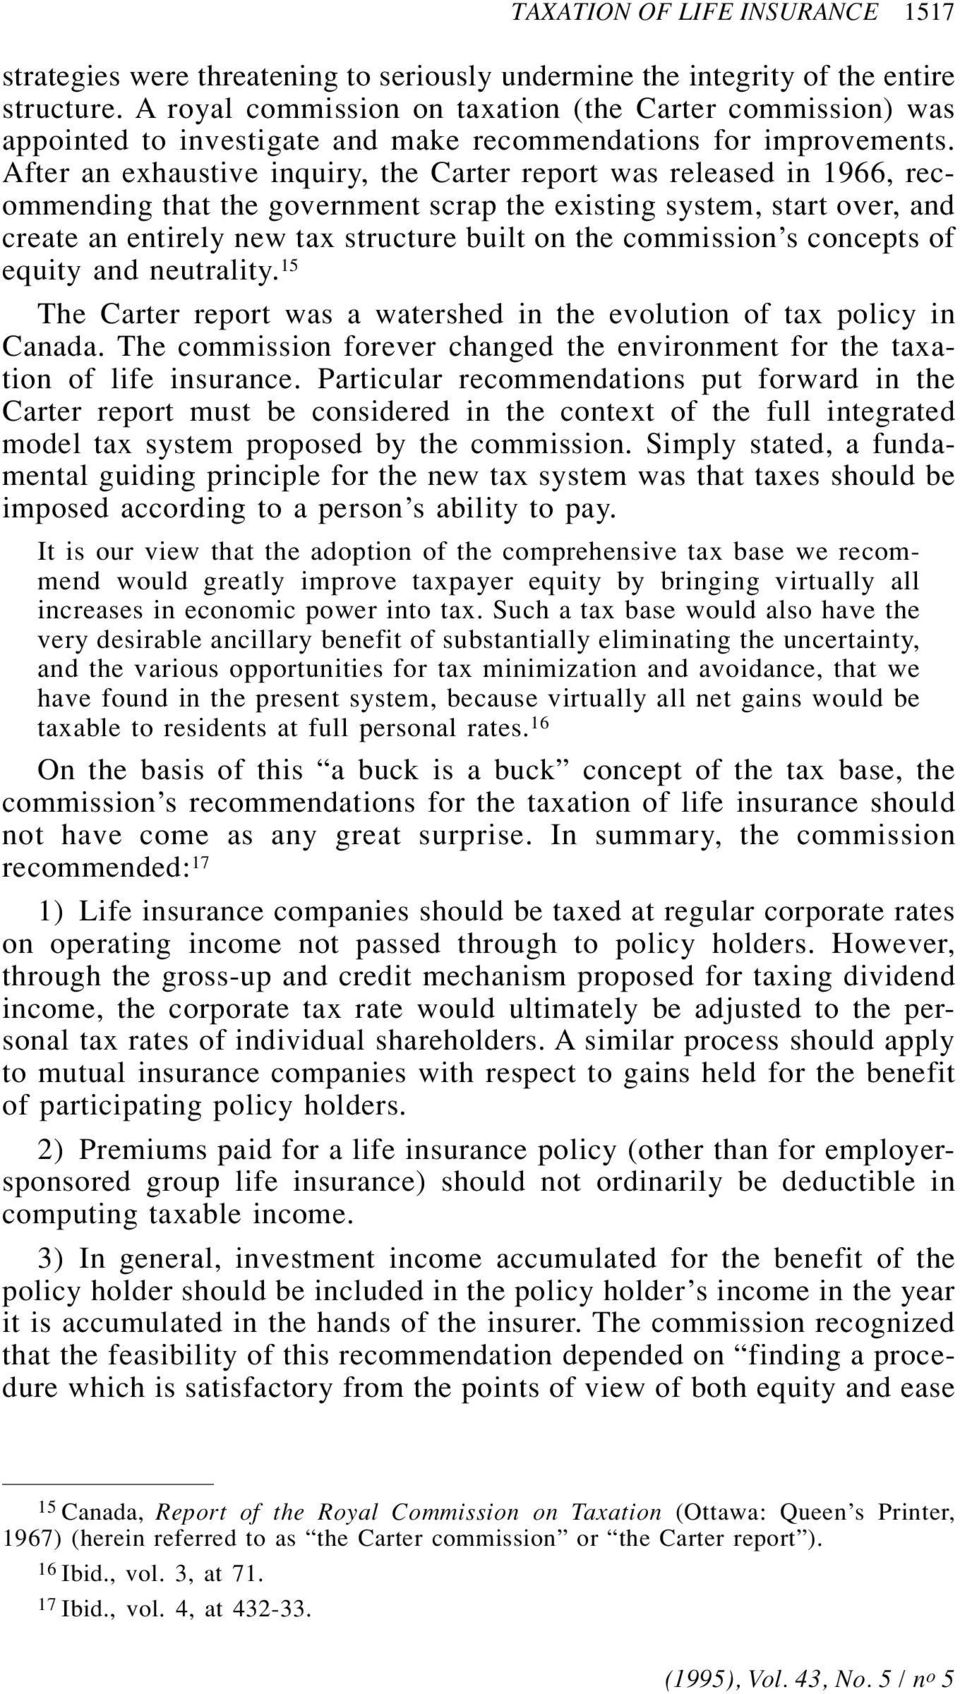 After an exhaustive inquiry, the Carter report was released in 1966, recommending that the government scrap the existing system, start over, and create an entirely new tax structure built on the